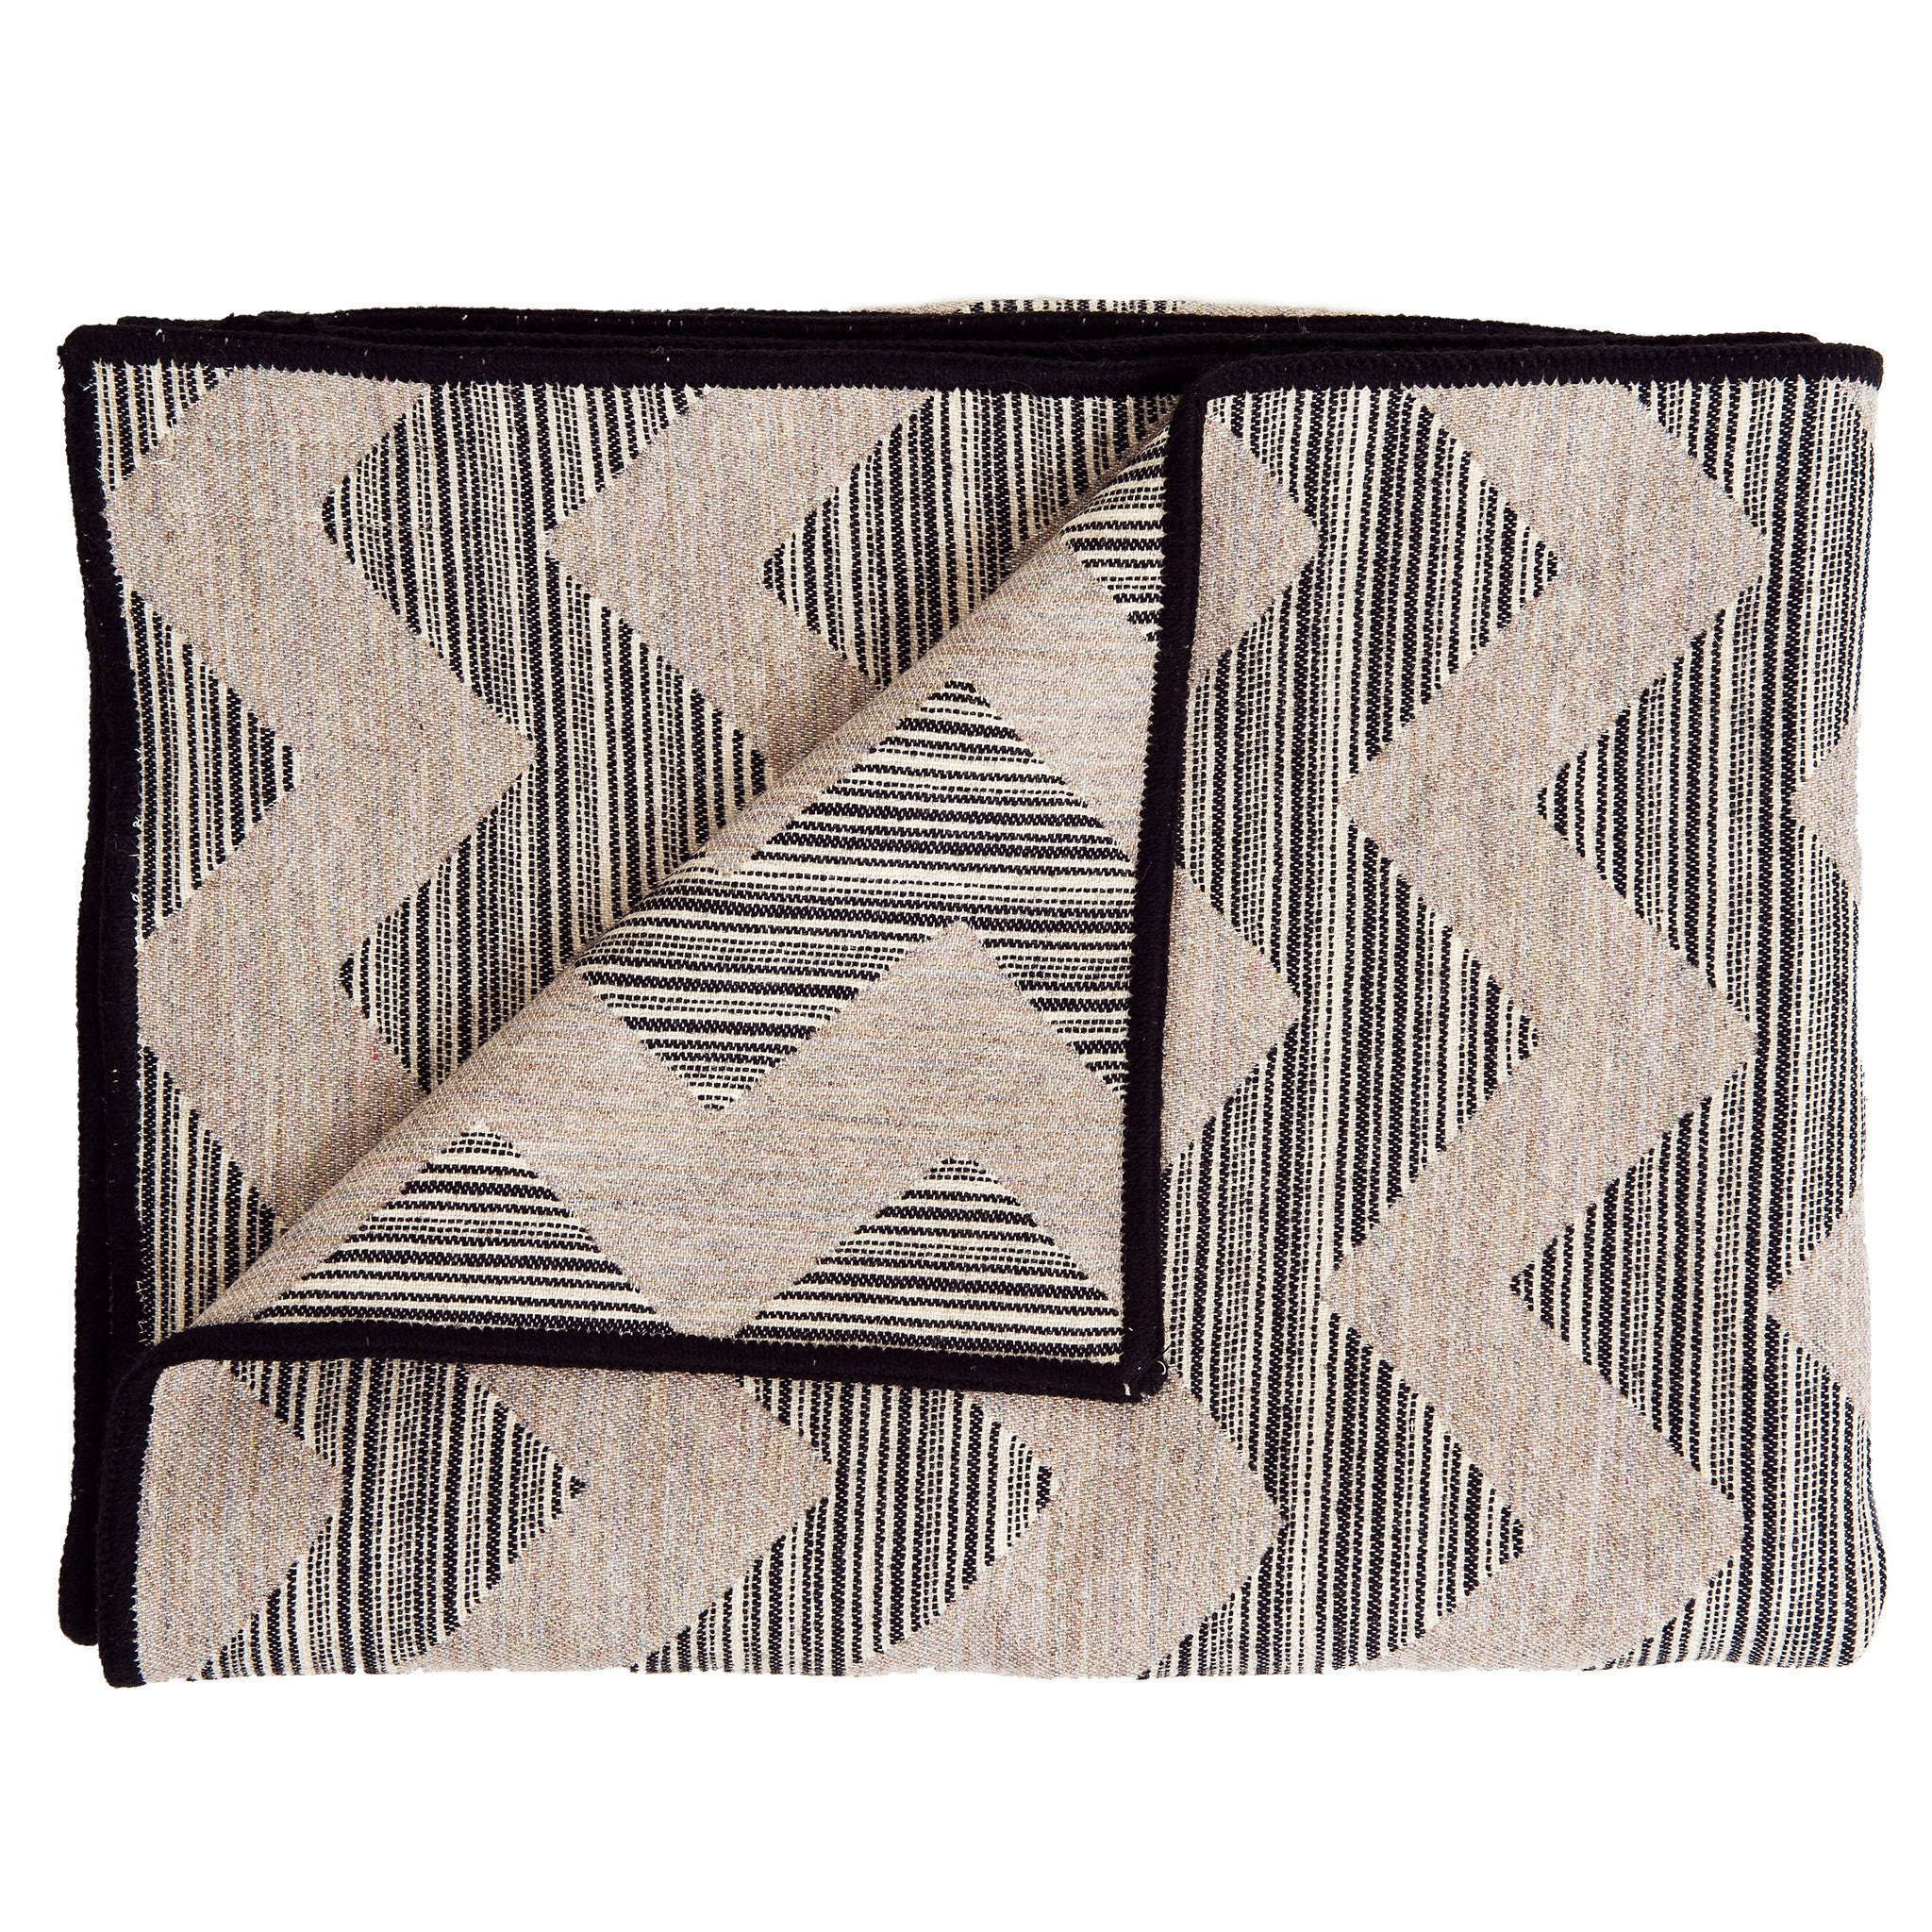 Merino Lambswool Throw - Chevy Strie Black, Pearl and Linen Throw - Tori Murphy Ltd